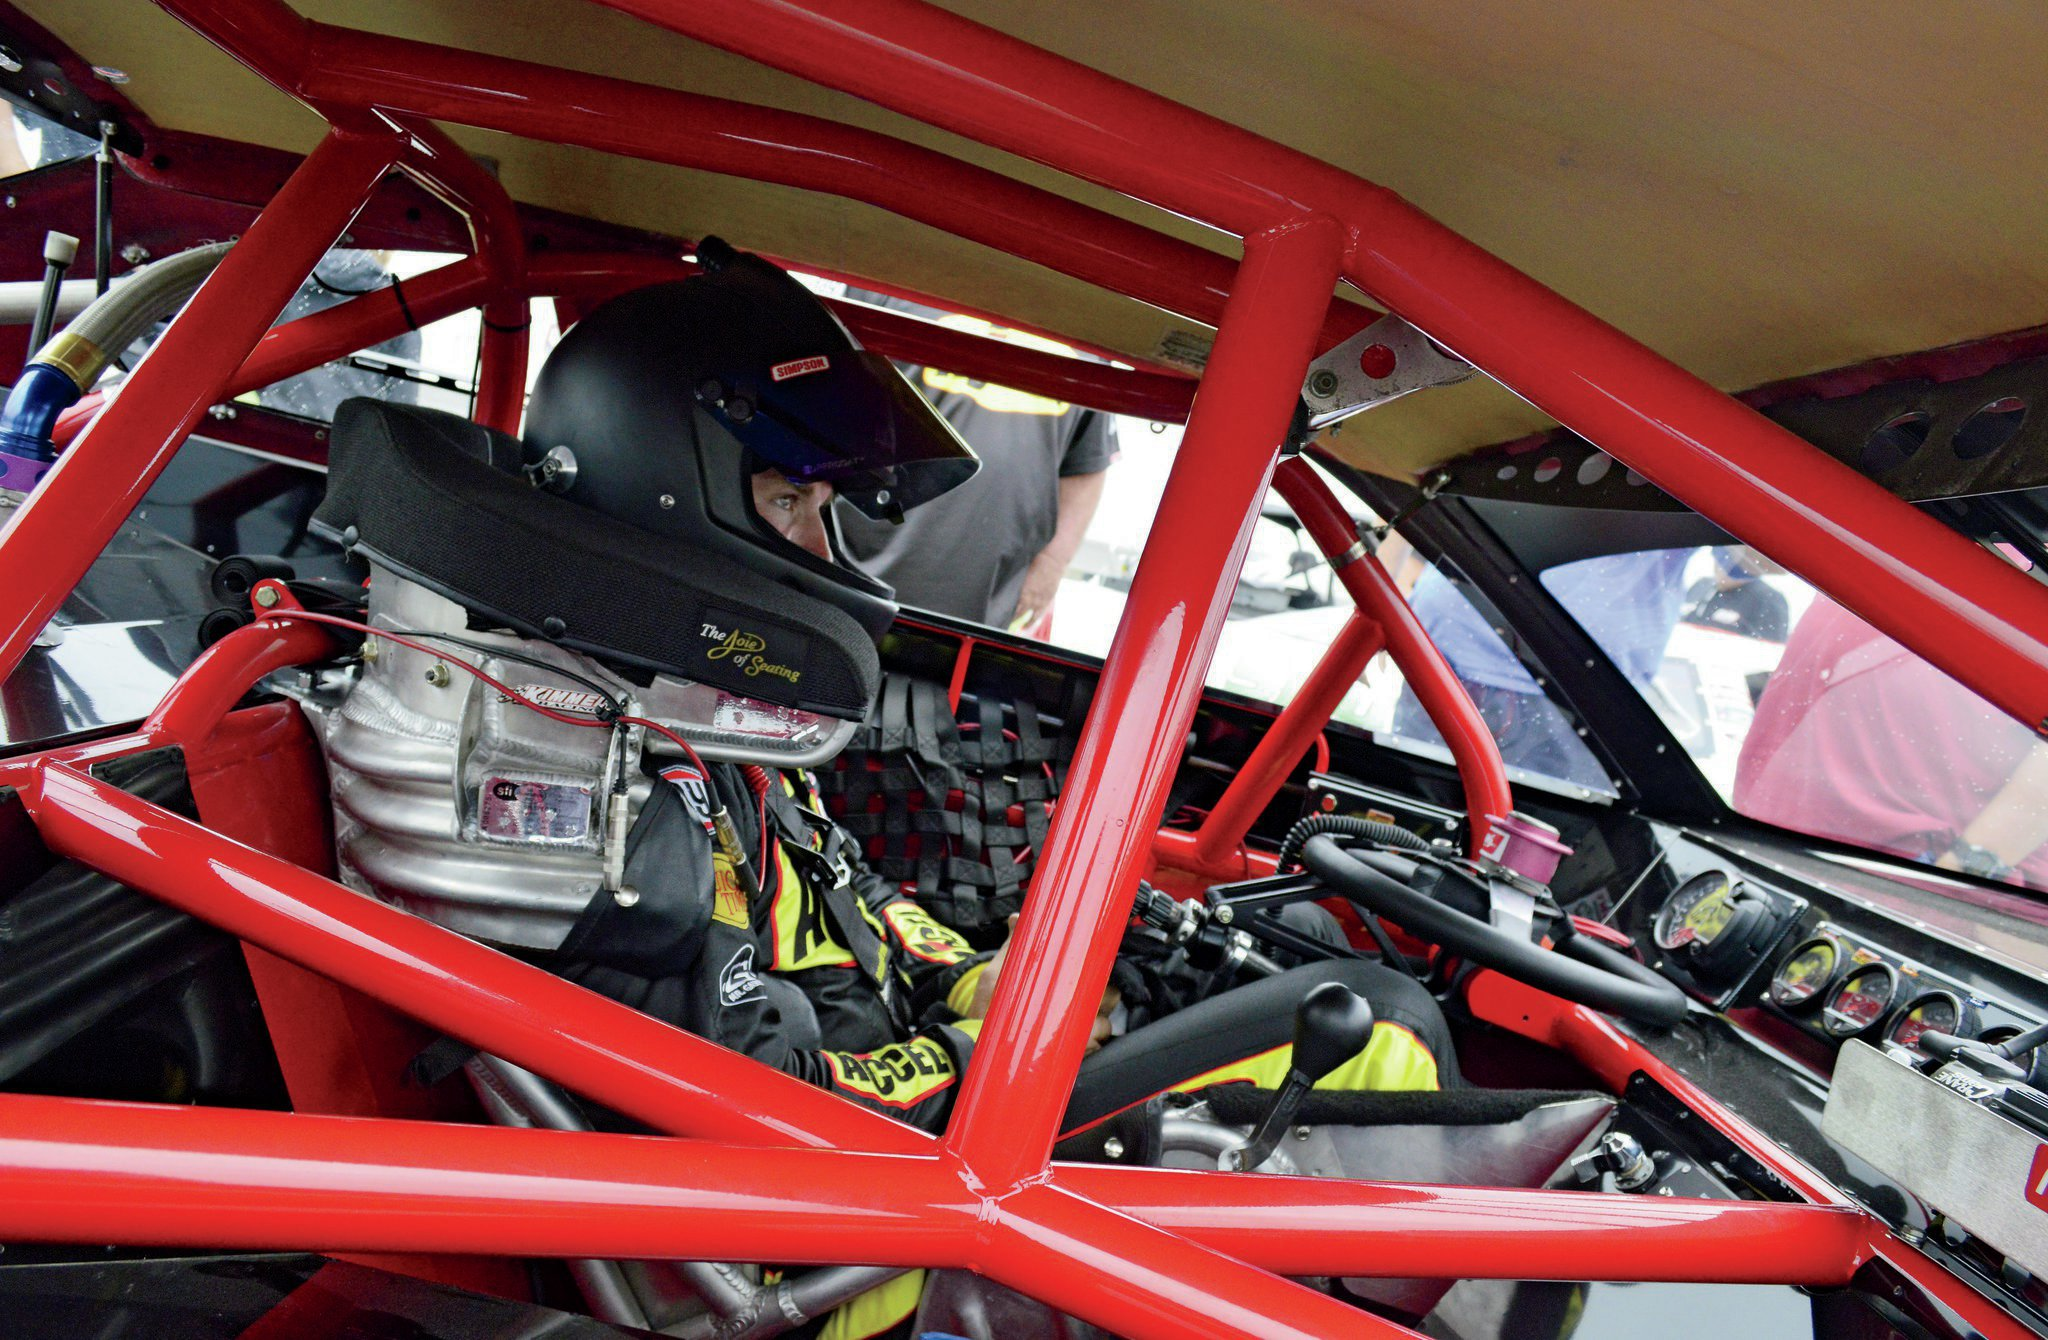 In this shot you can see how a properly designed and mounted seat holds a driver in place. Will favors a Joie of Seating seat built by former NASCAR Champion Randy LaJoie. Notice the reinforced ribbing on the backside of the seat, which adds strength and integrity to the whole system.